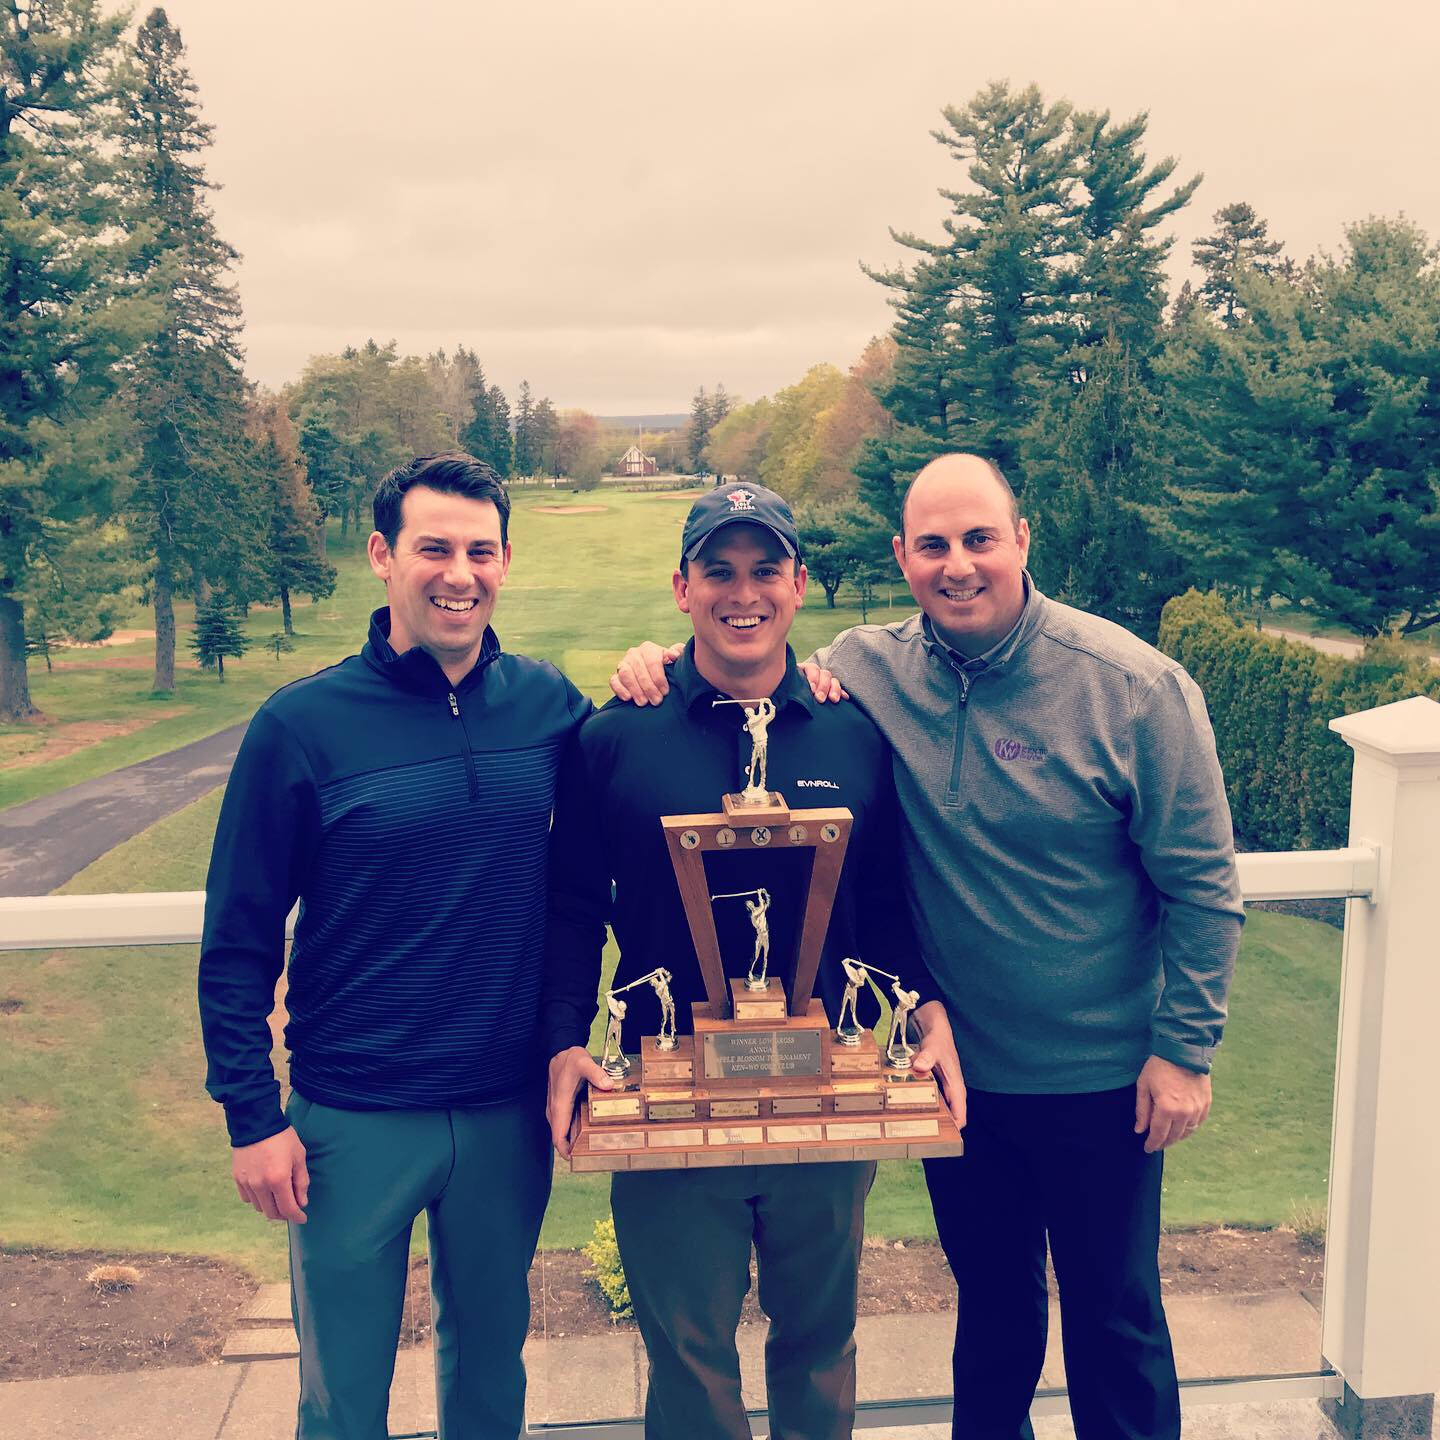 Mark Pothier crowned 67th Apple Blossom Champion